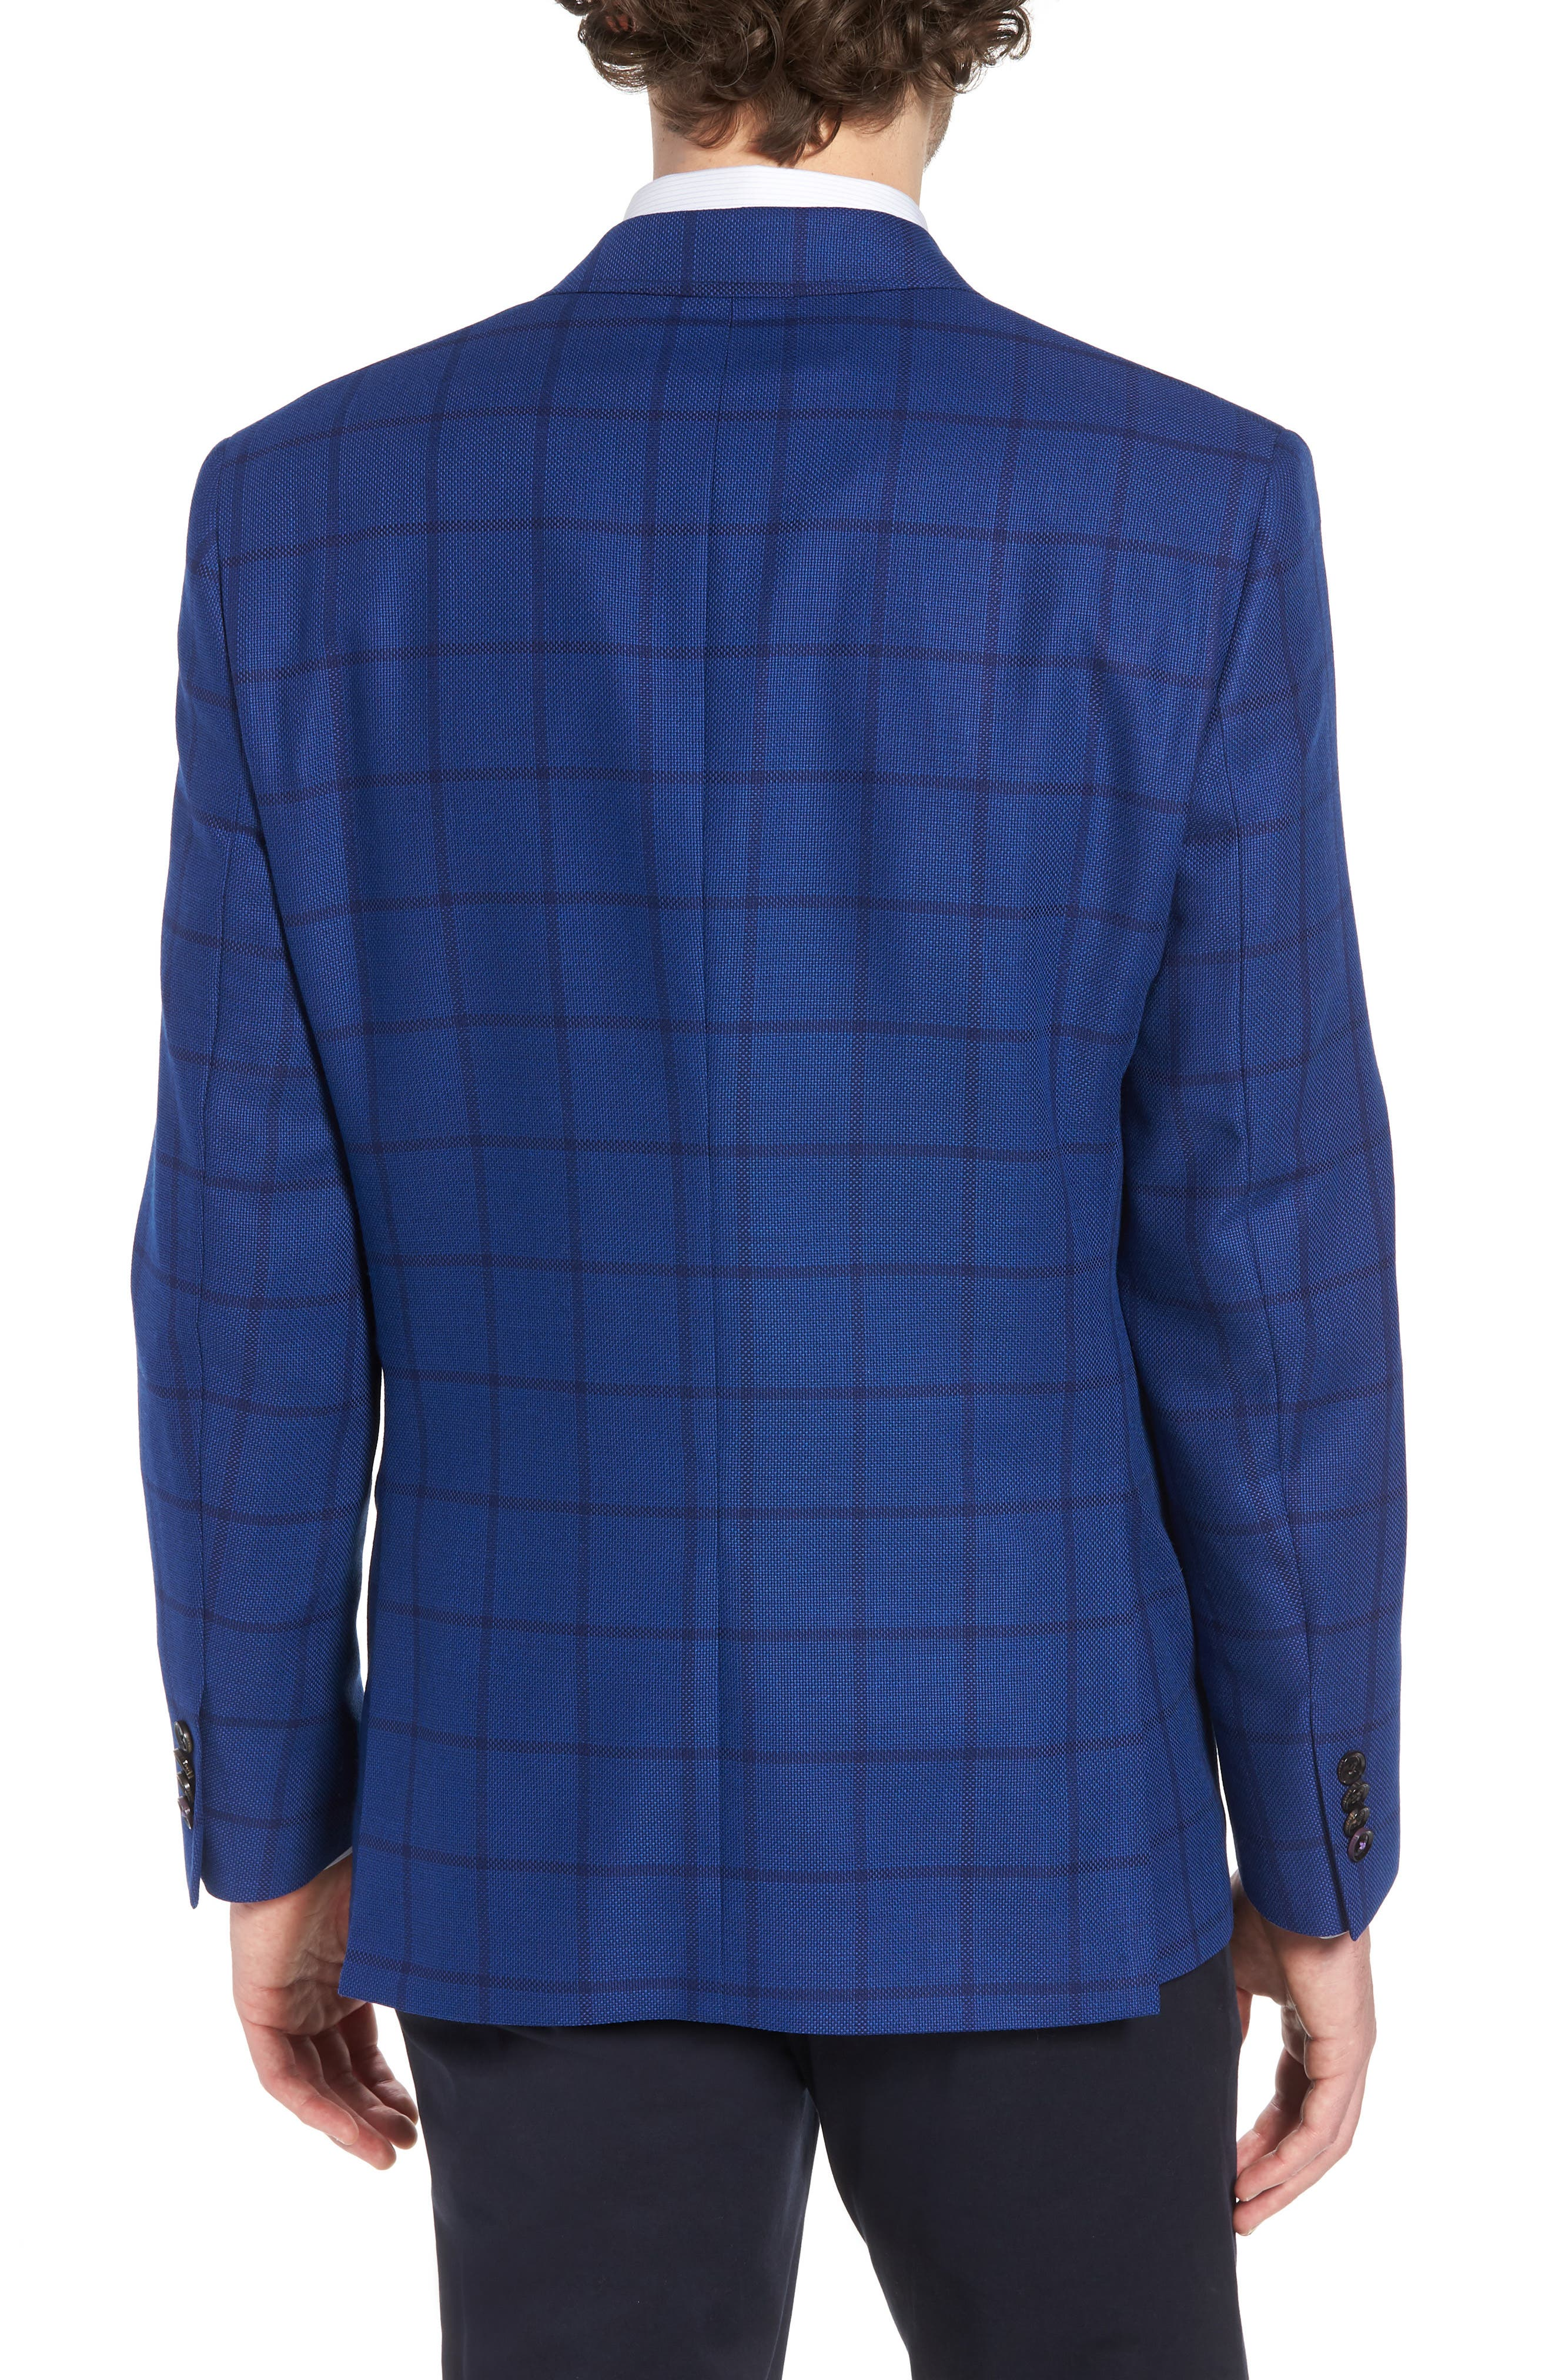 Jay Trim Fit Windowpane Wool Sport Coat,                             Alternate thumbnail 2, color,                             Blue